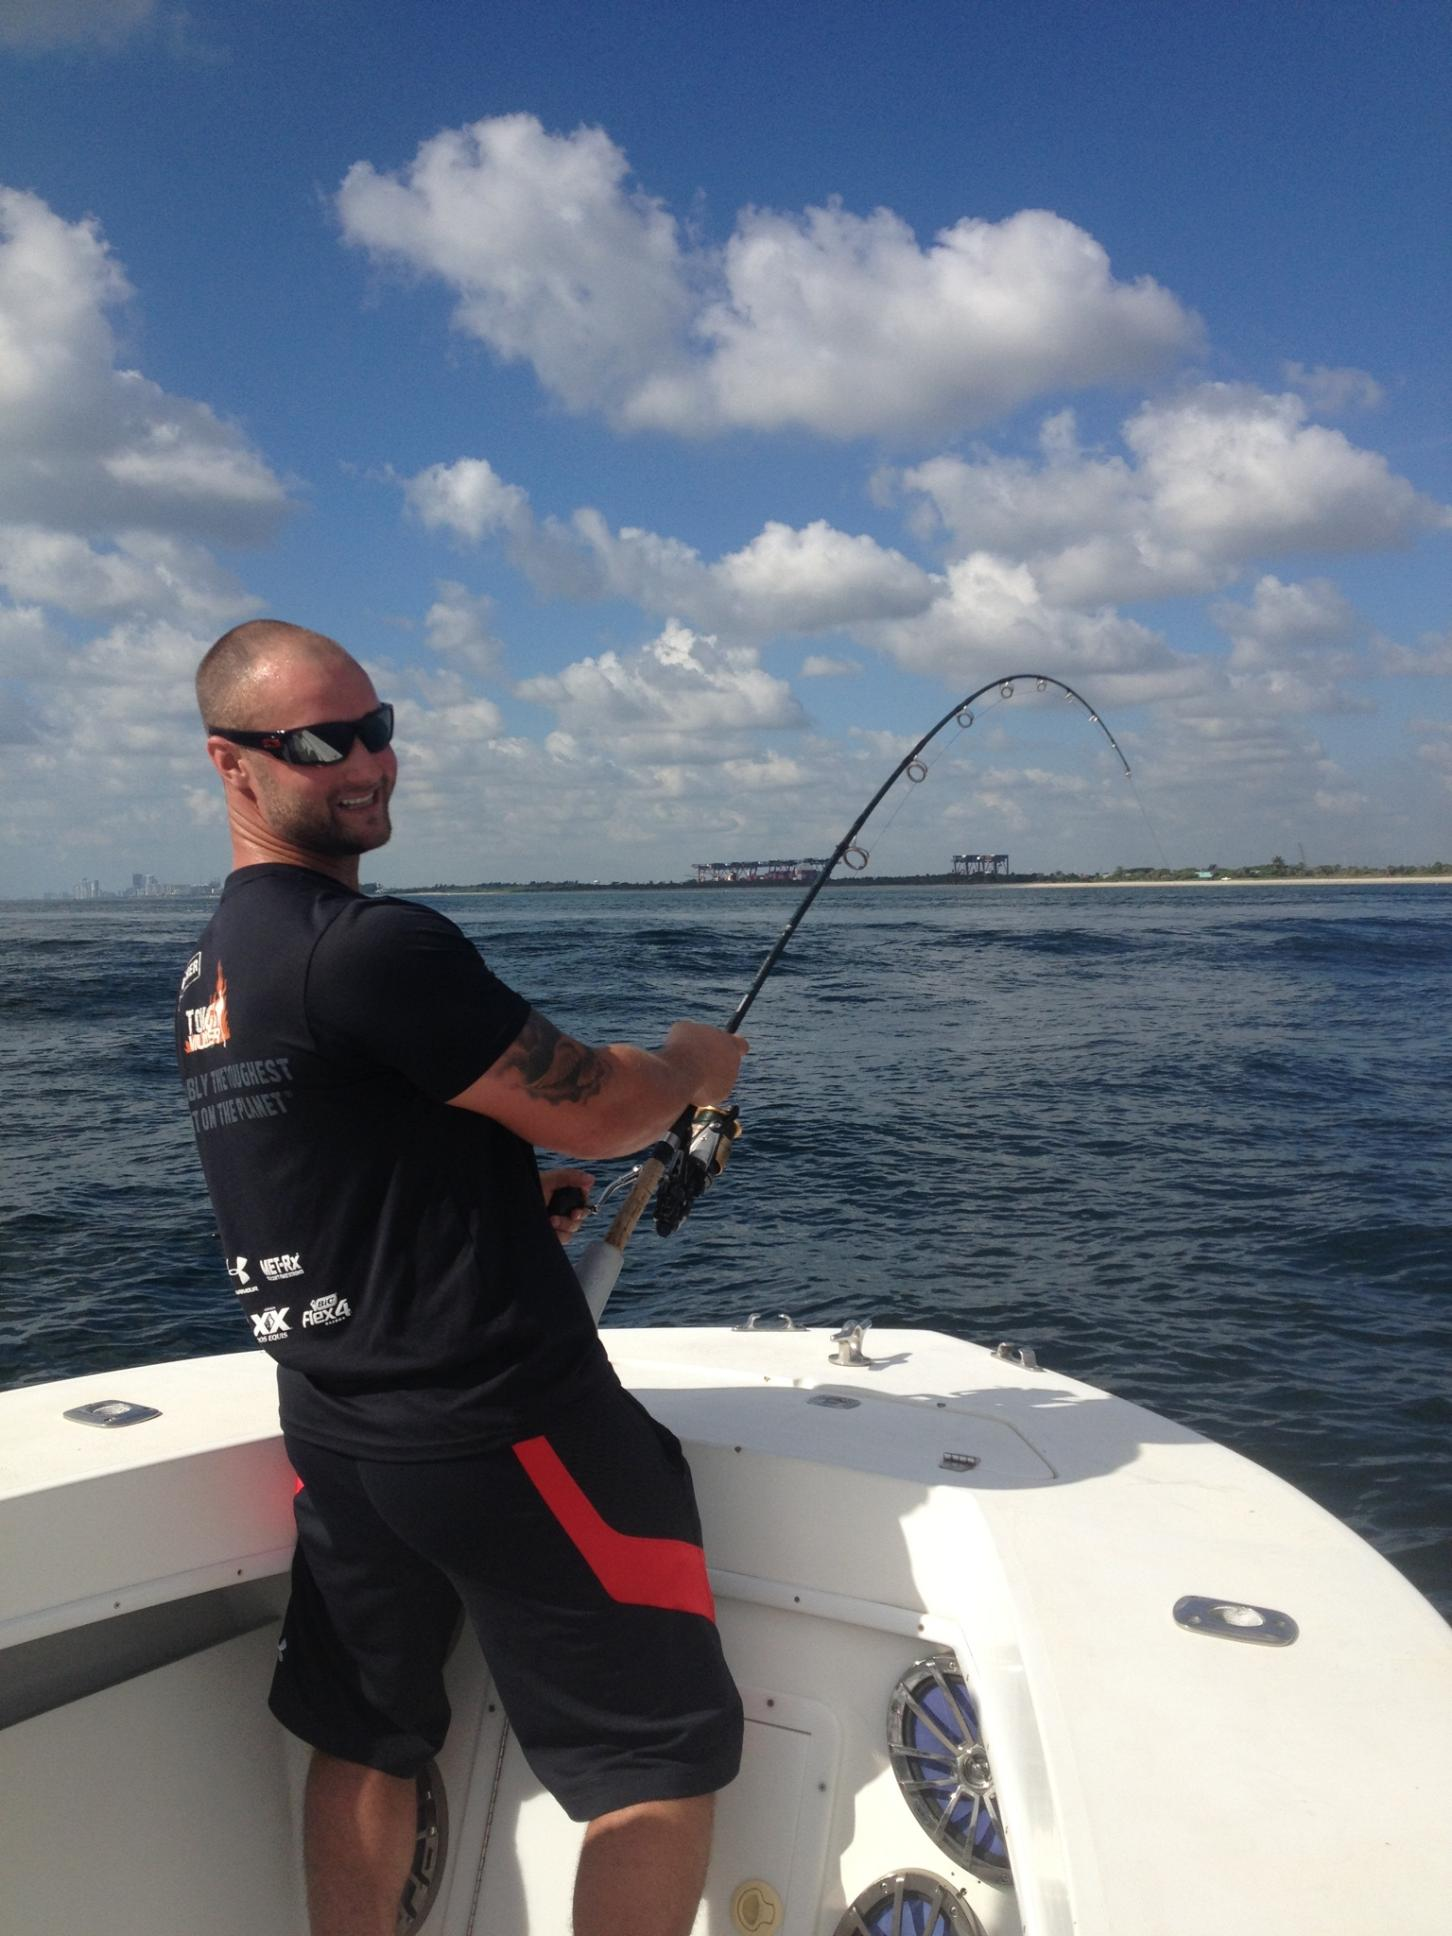 Great inshore fishing in fort lauderdale for tarpon and for Fishing spots in fort lauderdale